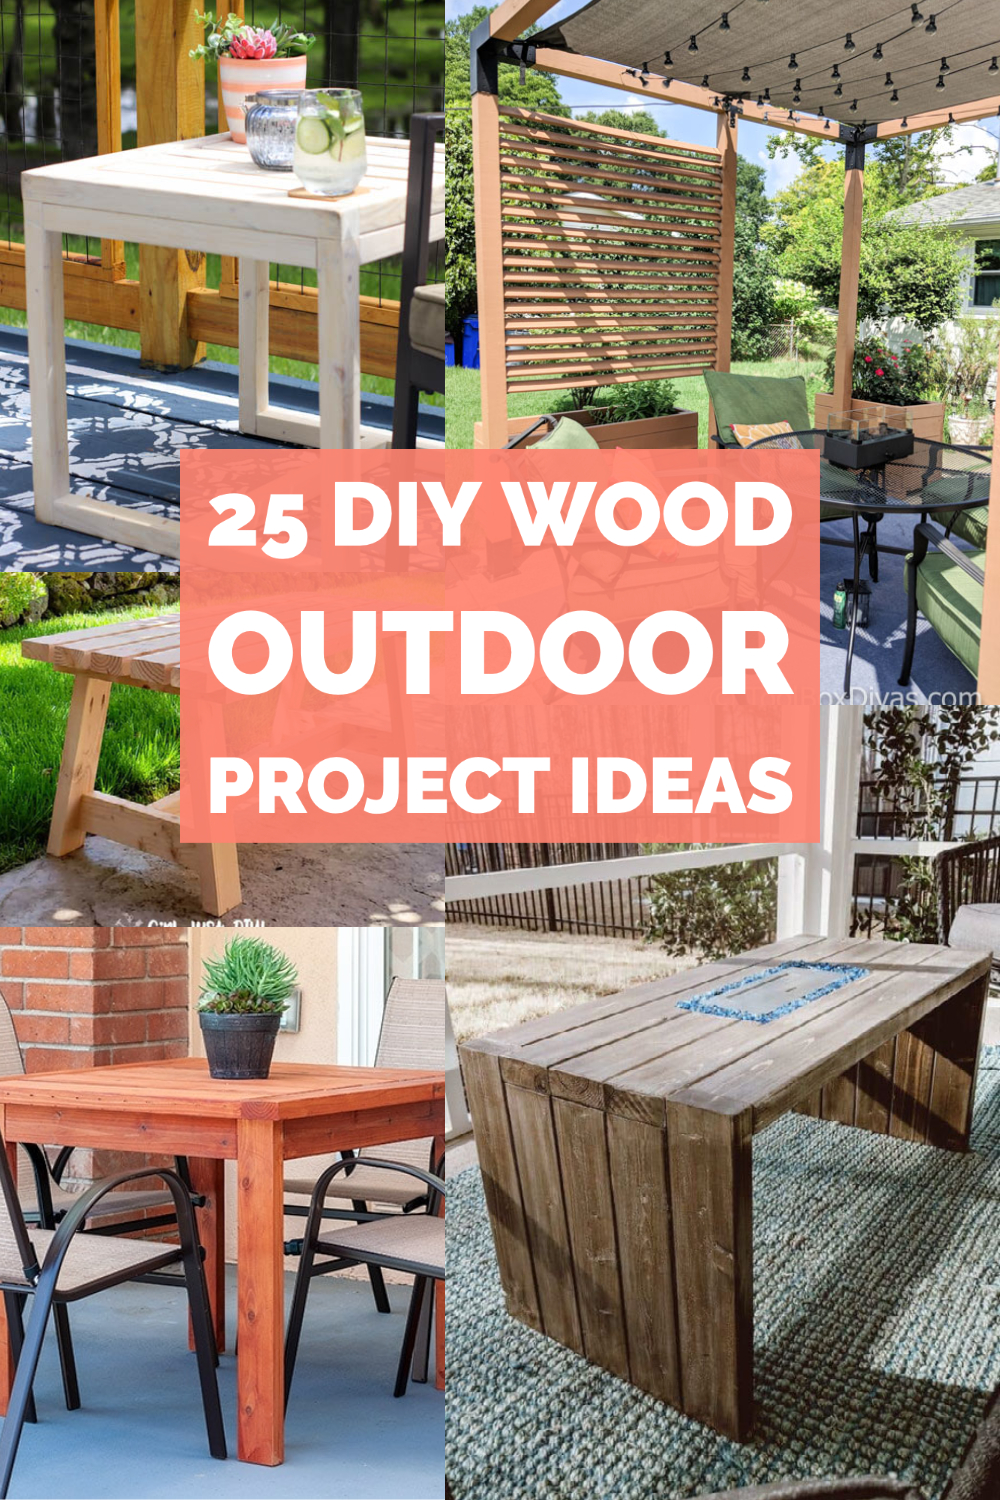 image collage of DIY wood outdoor furniture projects